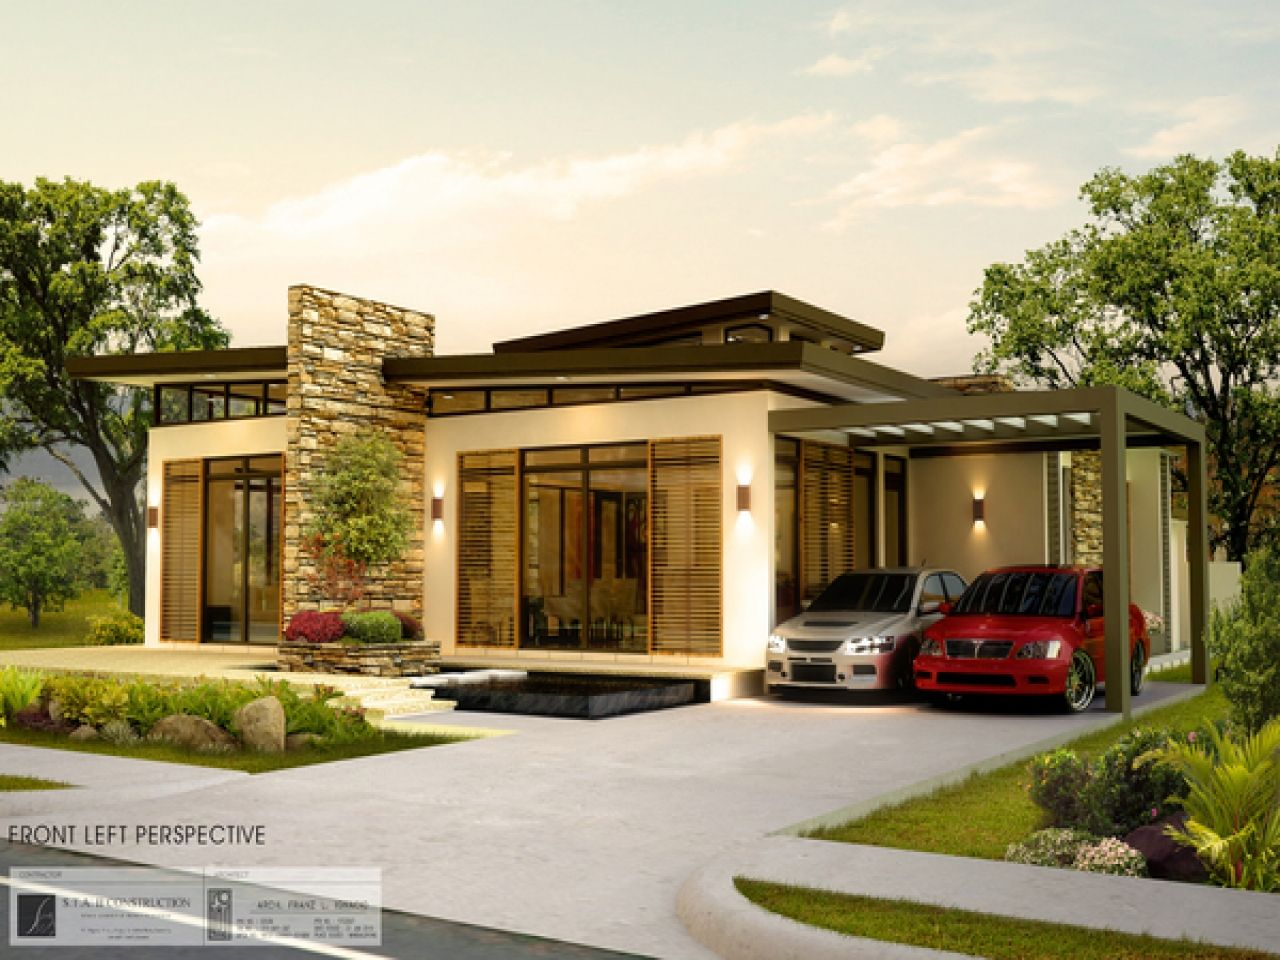 Best Bungalow Designs Modern Bungalow House Designs Philippines Lrg 831f078a24f9eb2b Jpg 1 Bungalow House Design Philippines House Design Bungalow House Plans